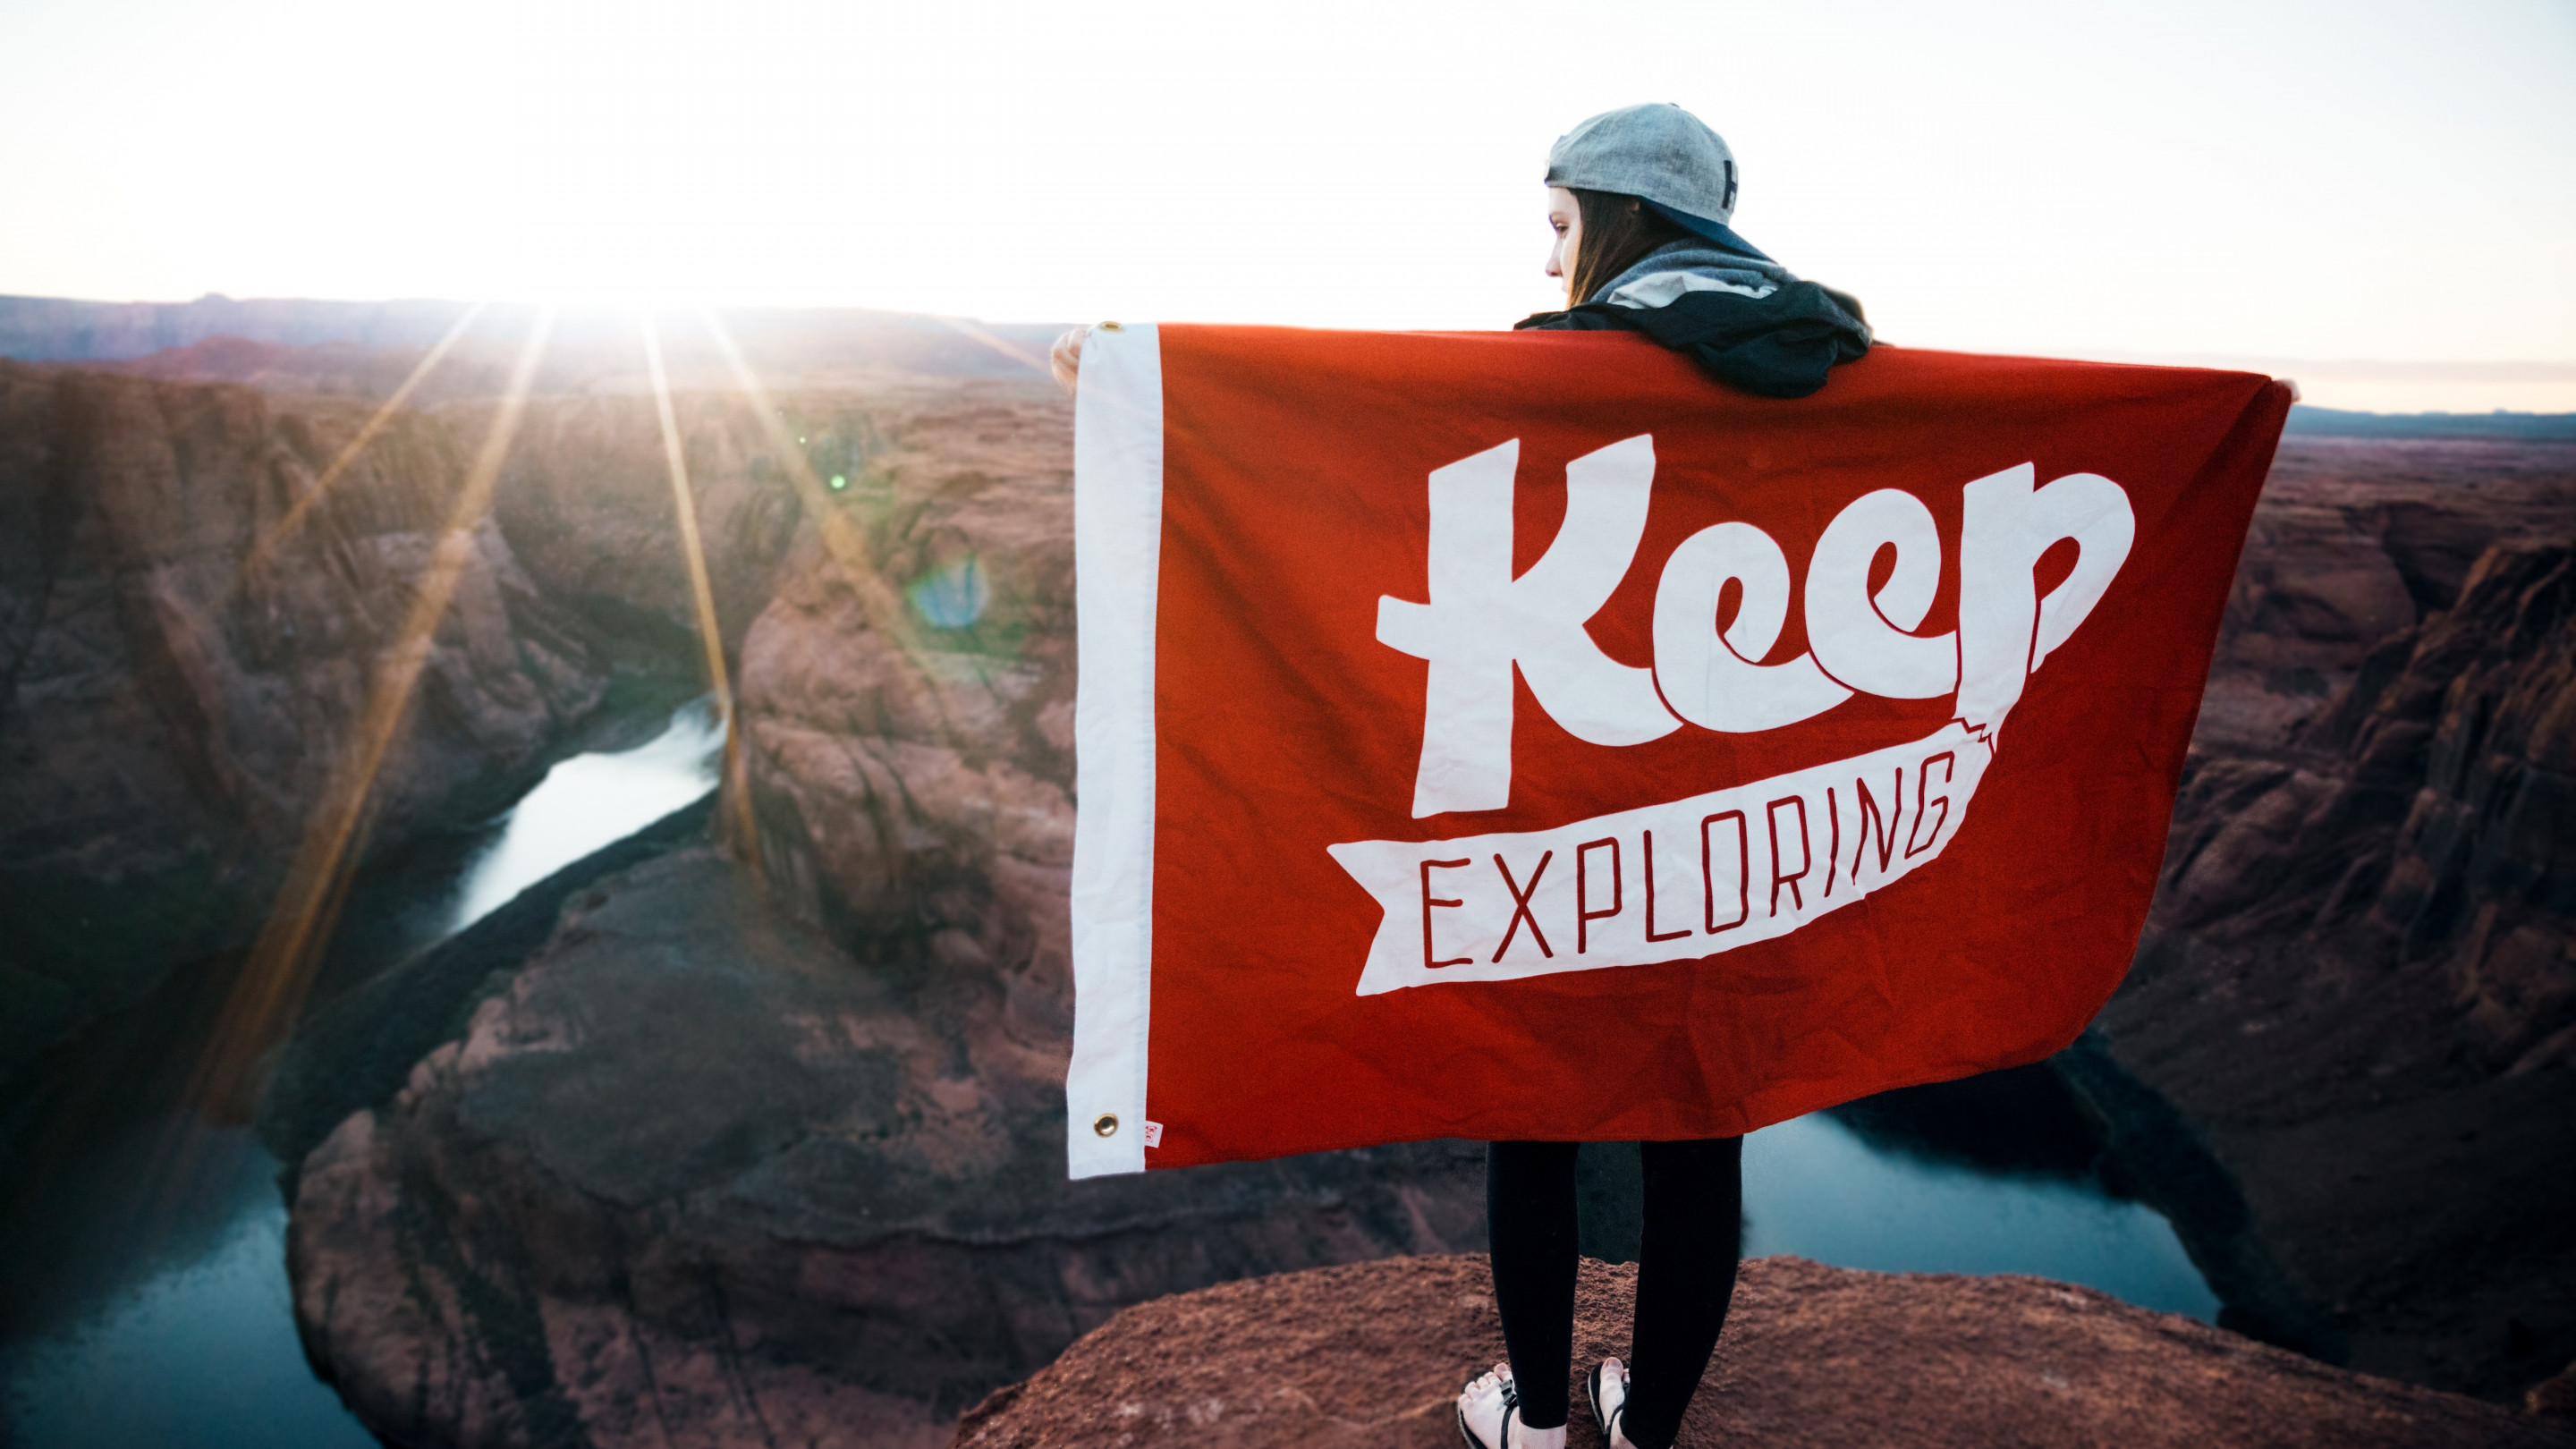 Keep Exploring | 2880x1620 wallpaper